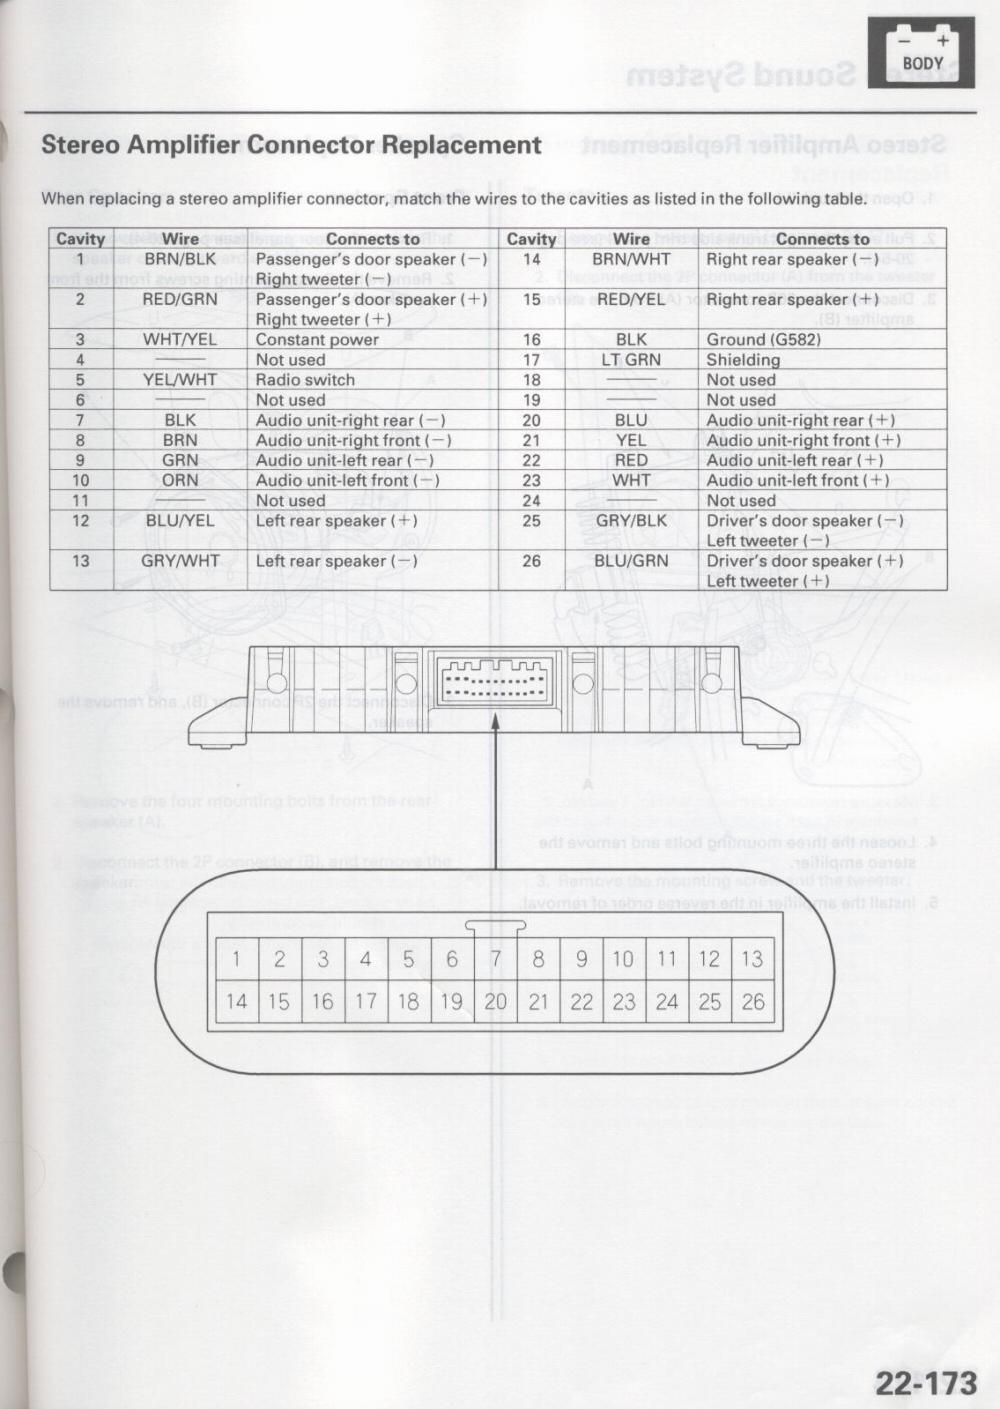 Acura 2002 TL car stereo amplifier wiring diagram harness car radio stereo audio wiring diagram autoradio connector wire suzuki swift 2007 stereo wiring diagram at aneh.co